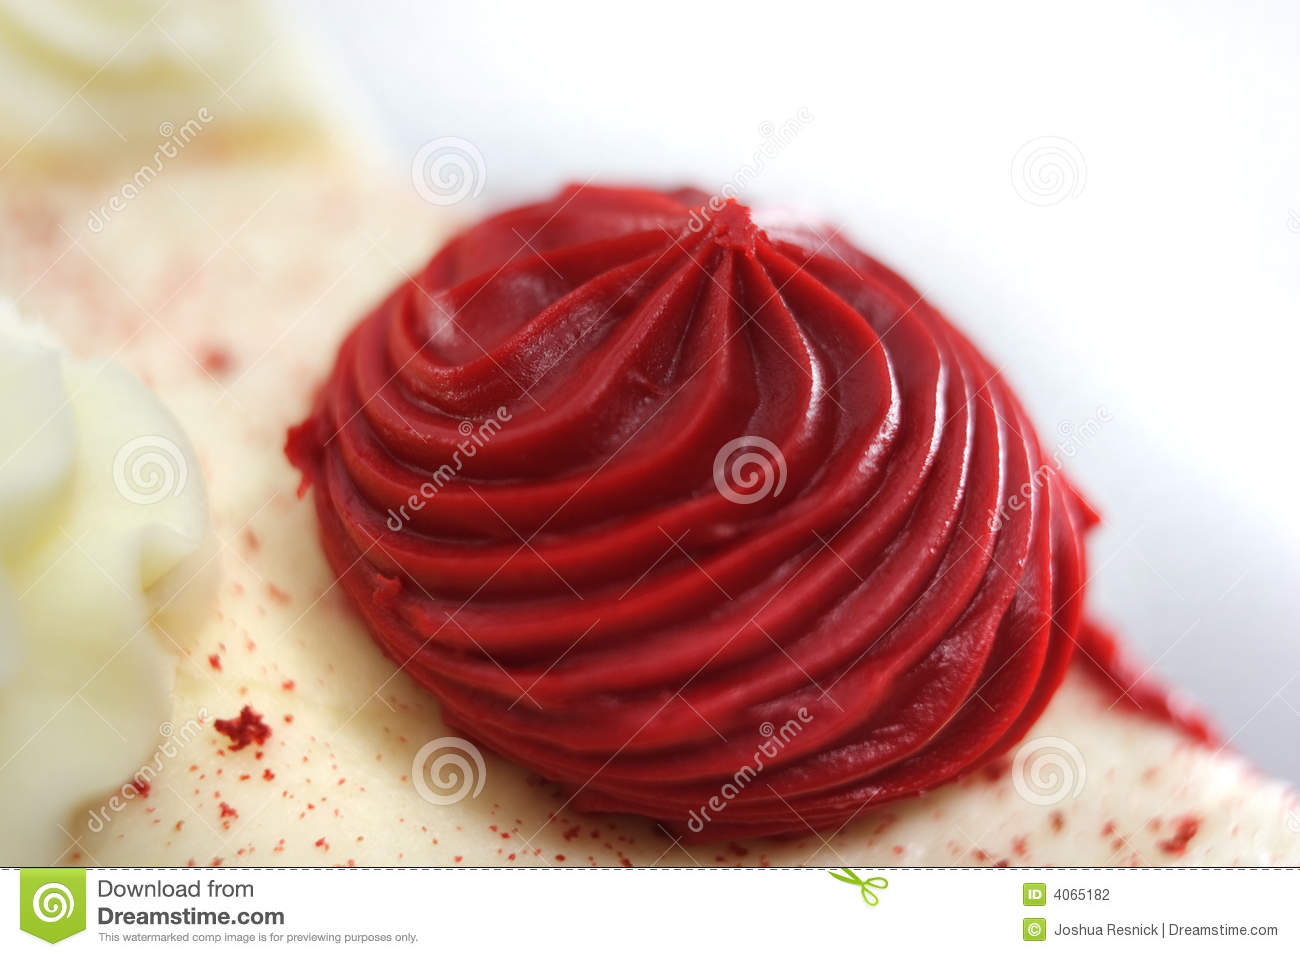 What Is The Icing On A Red Velvet Cake